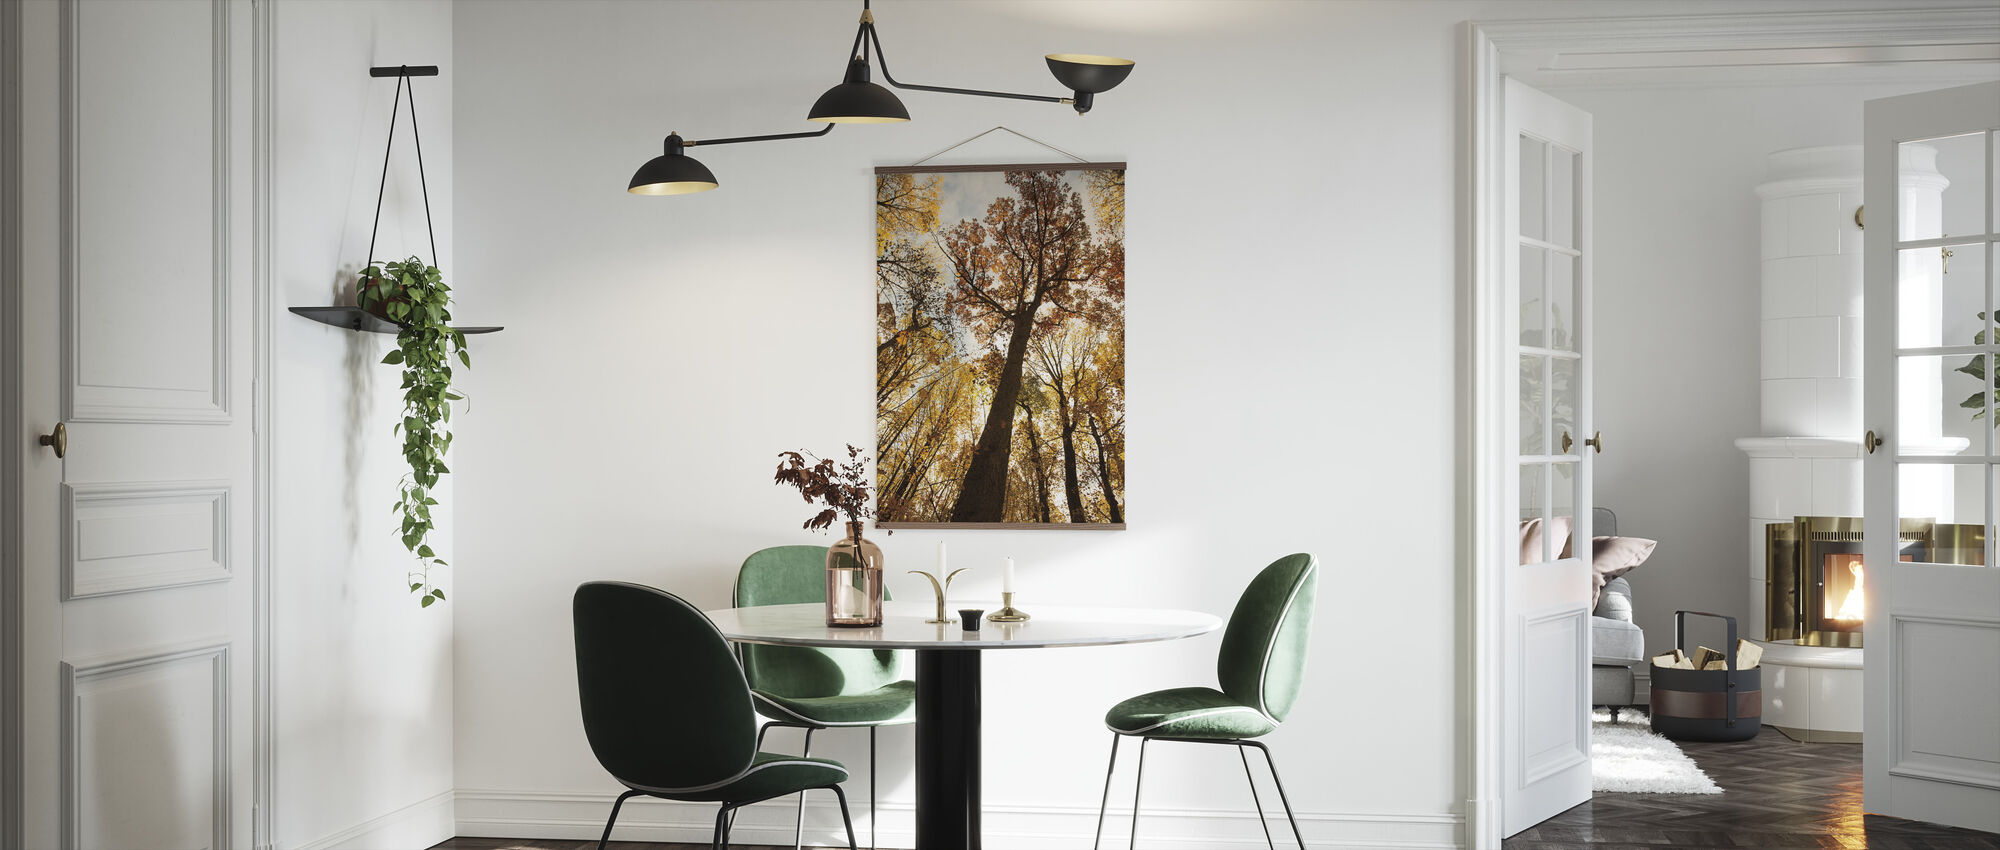 Towering Trees I - Poster - Kitchen